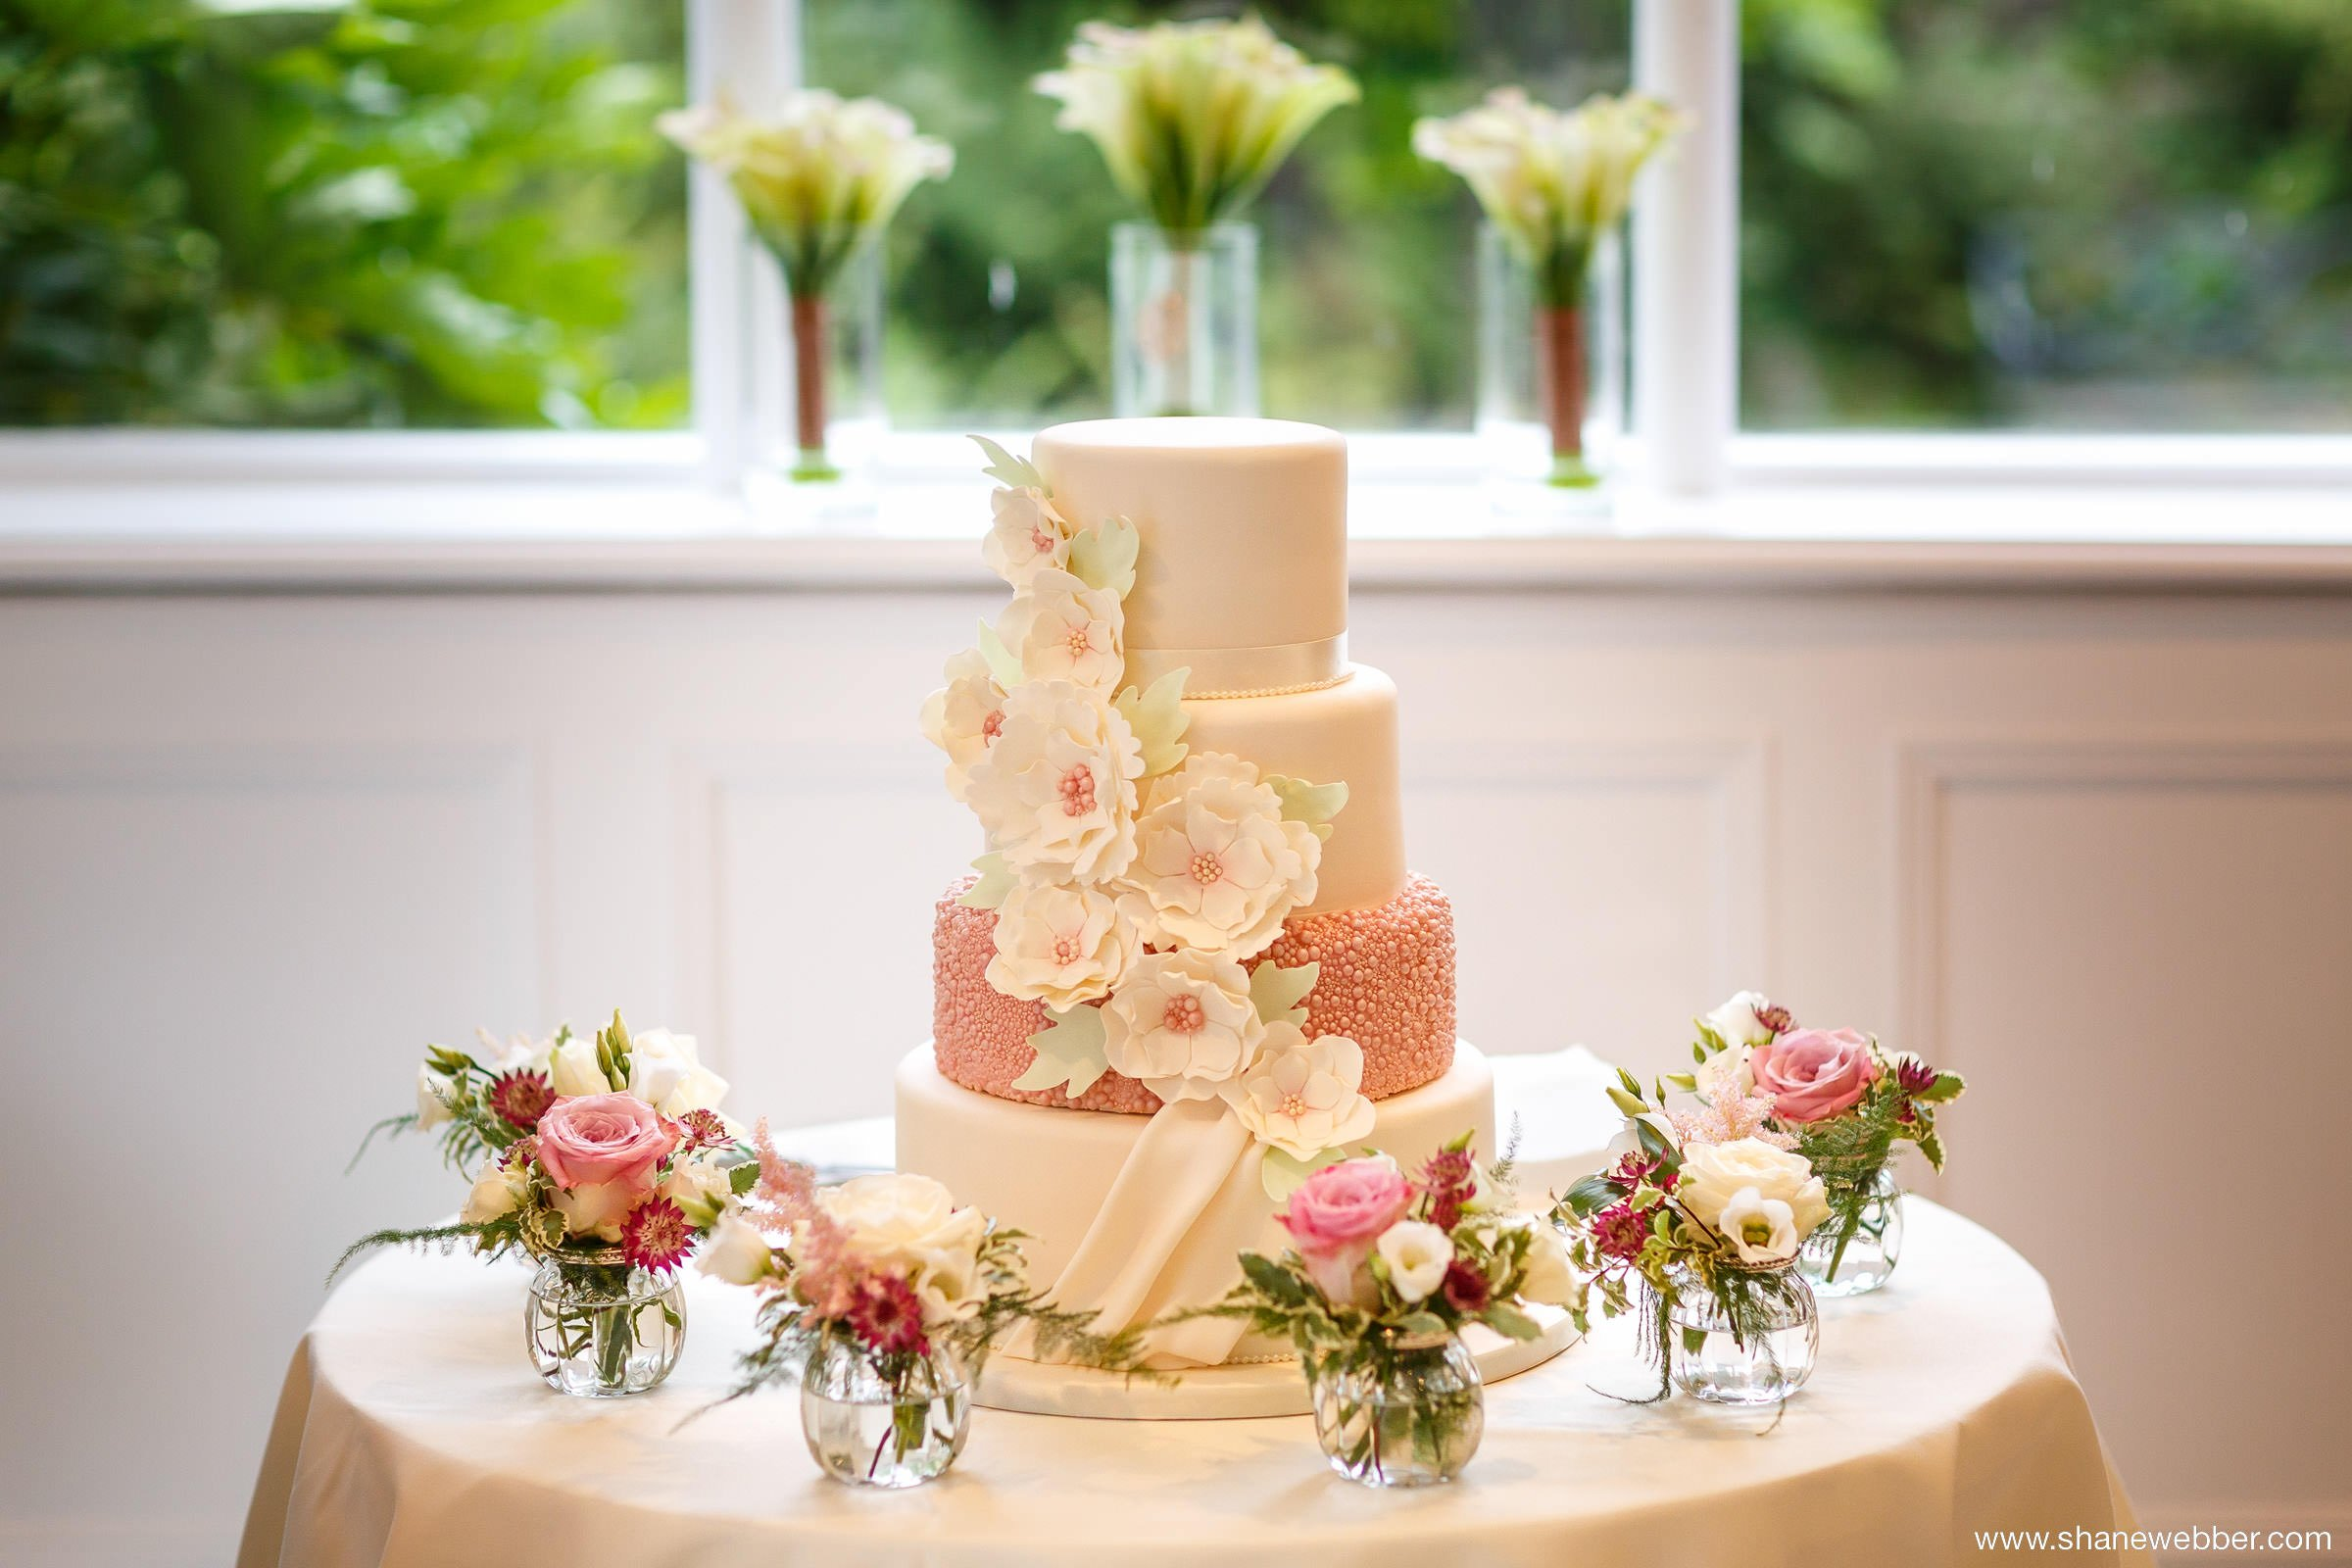 Cake by The Walkden Cake Company